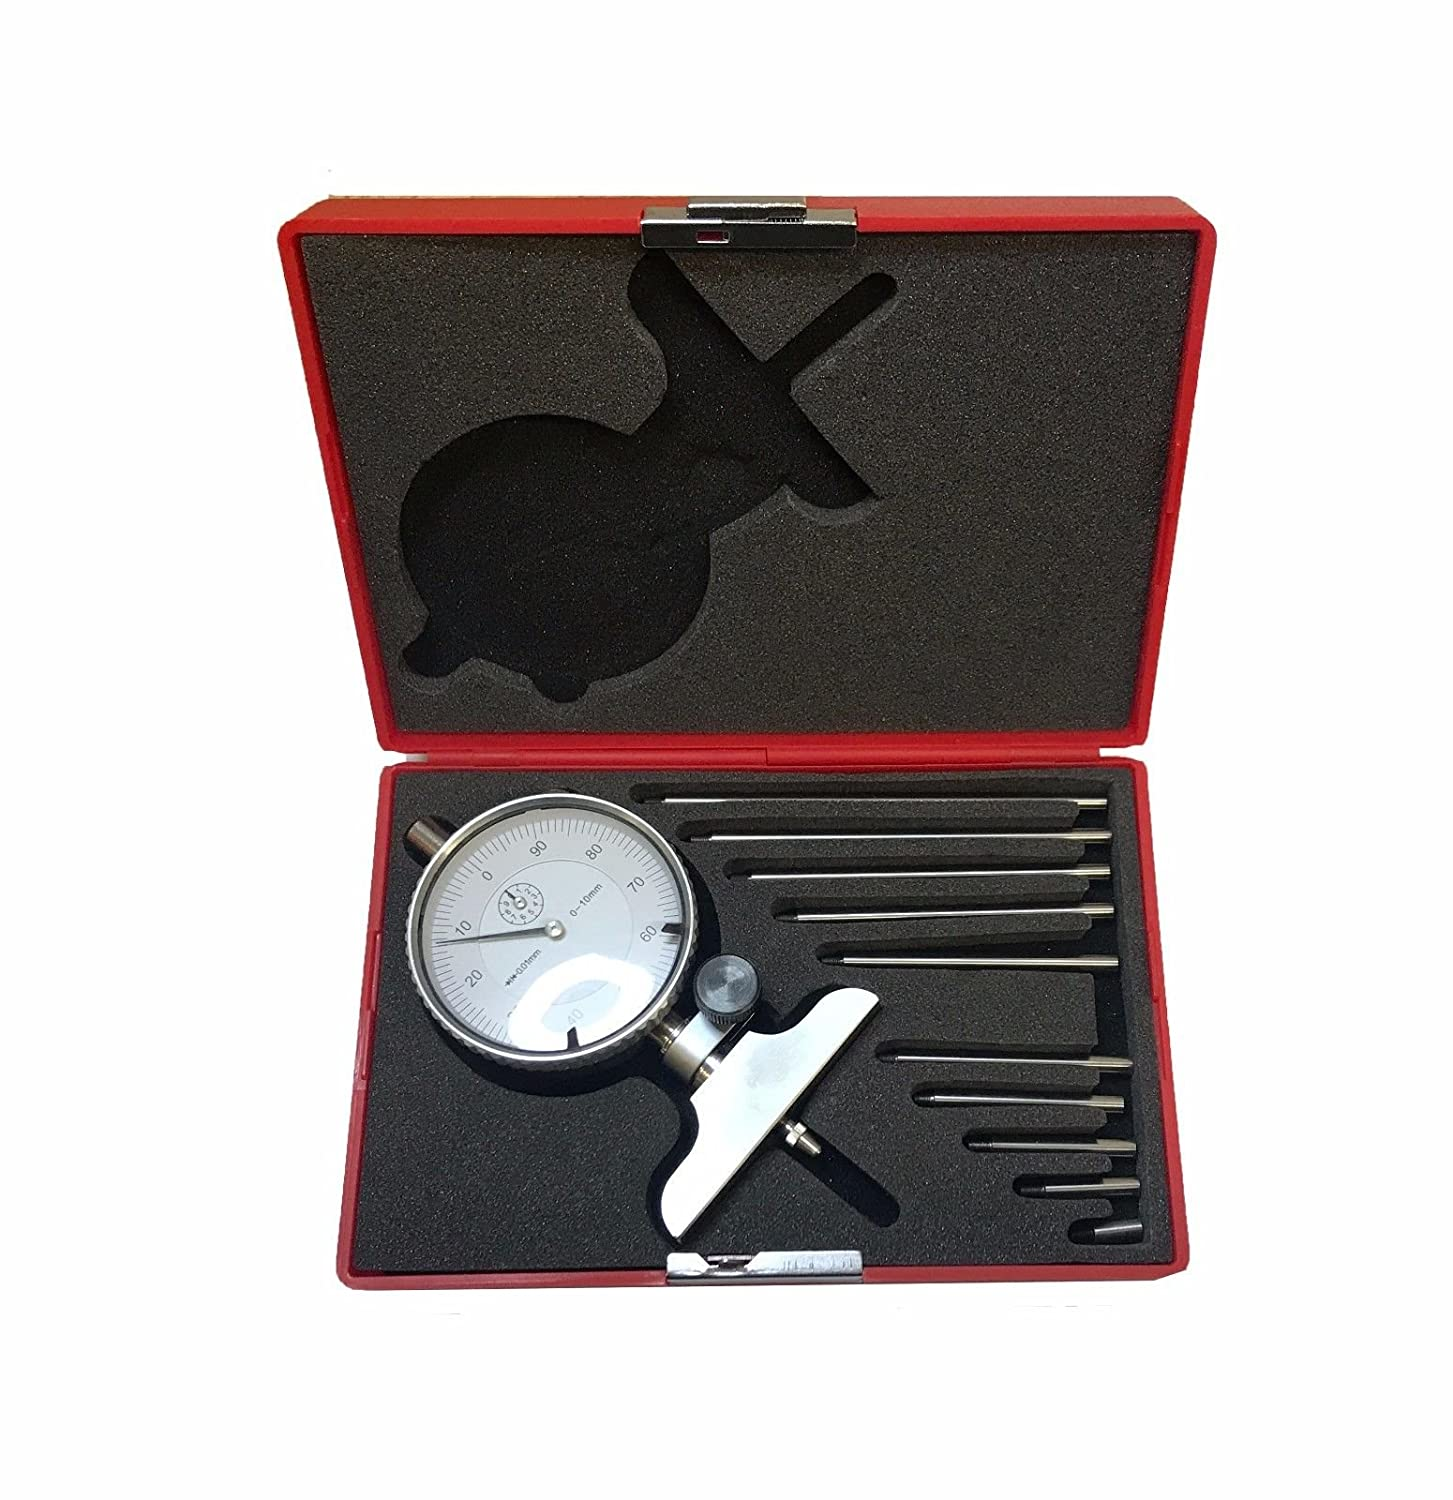 METRIC DEPTH GAUGE WITH DIAL RANGE 0-100MM WITH EXTENSIONS HBM